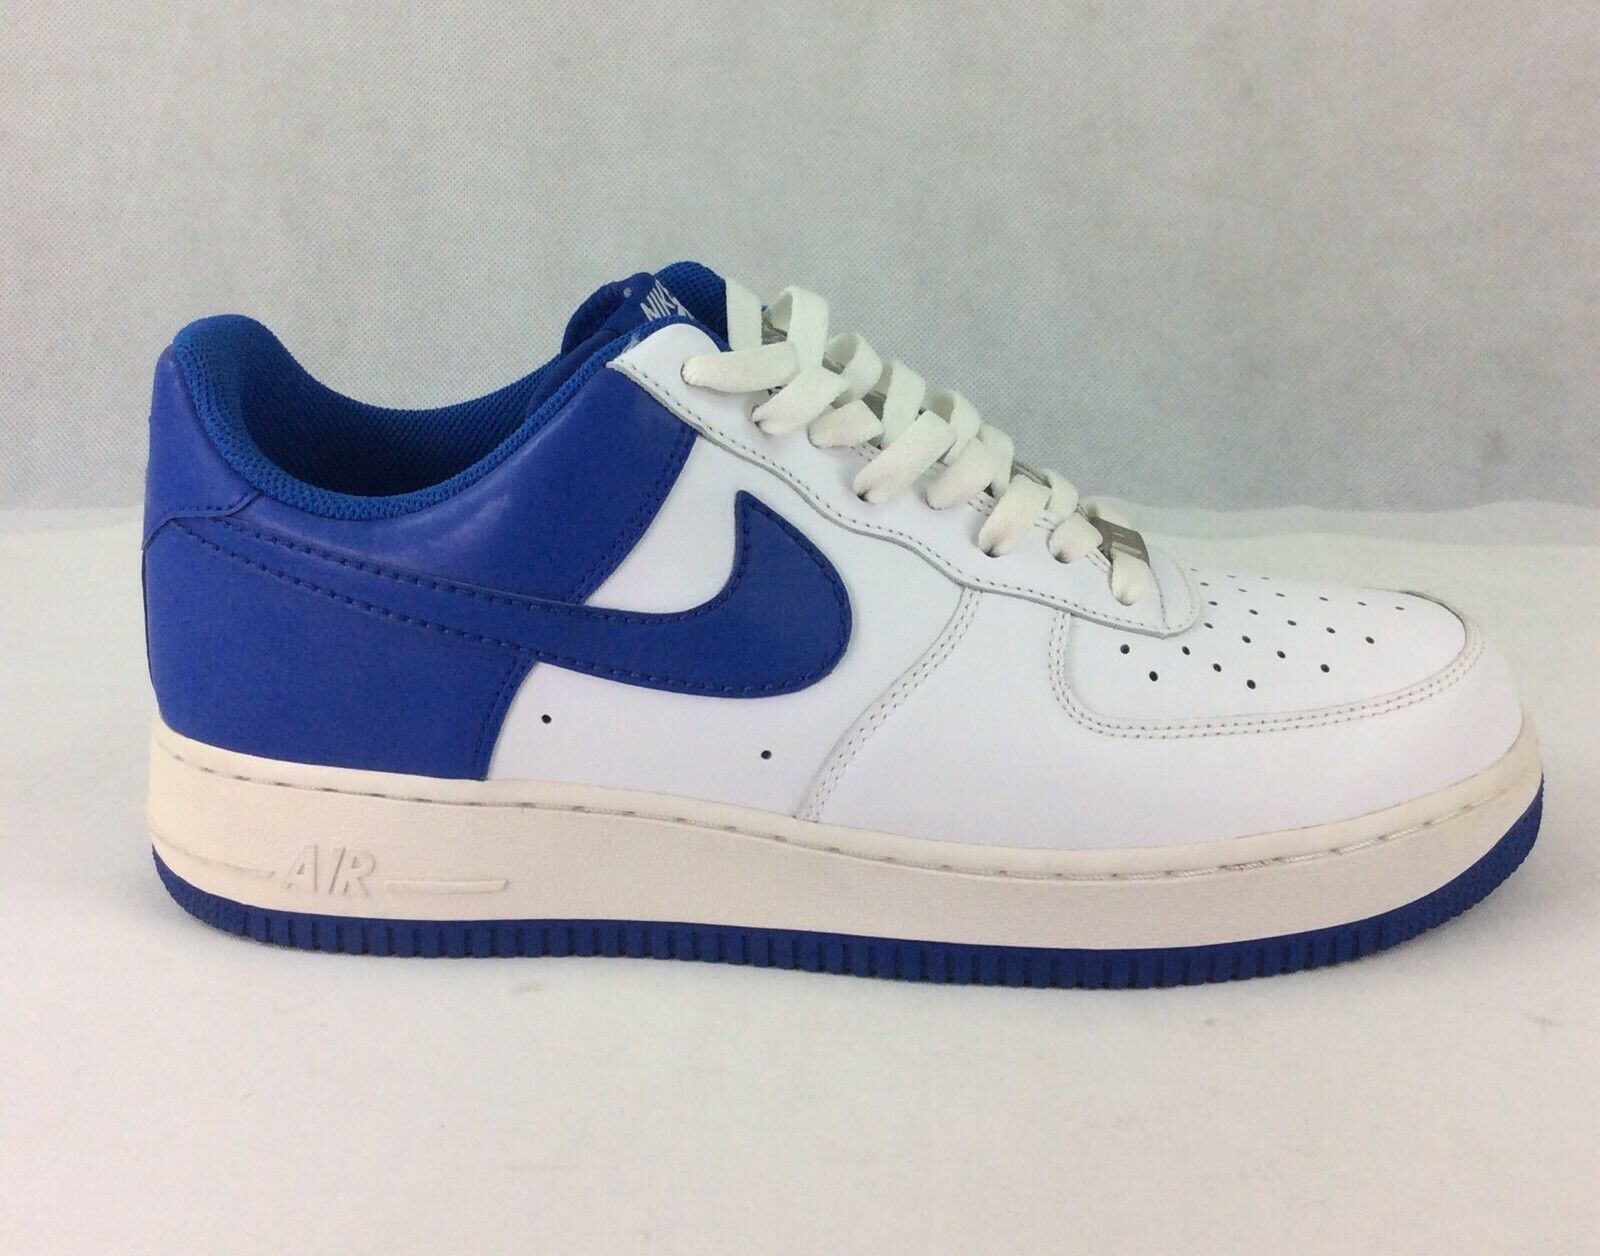 NIKE NIKE NIKE AIR FORCE 1 '07 - WHITE   VARSITY ROYAL LOW TOP BASKETBALL SHOES - SZ 11 6229e0